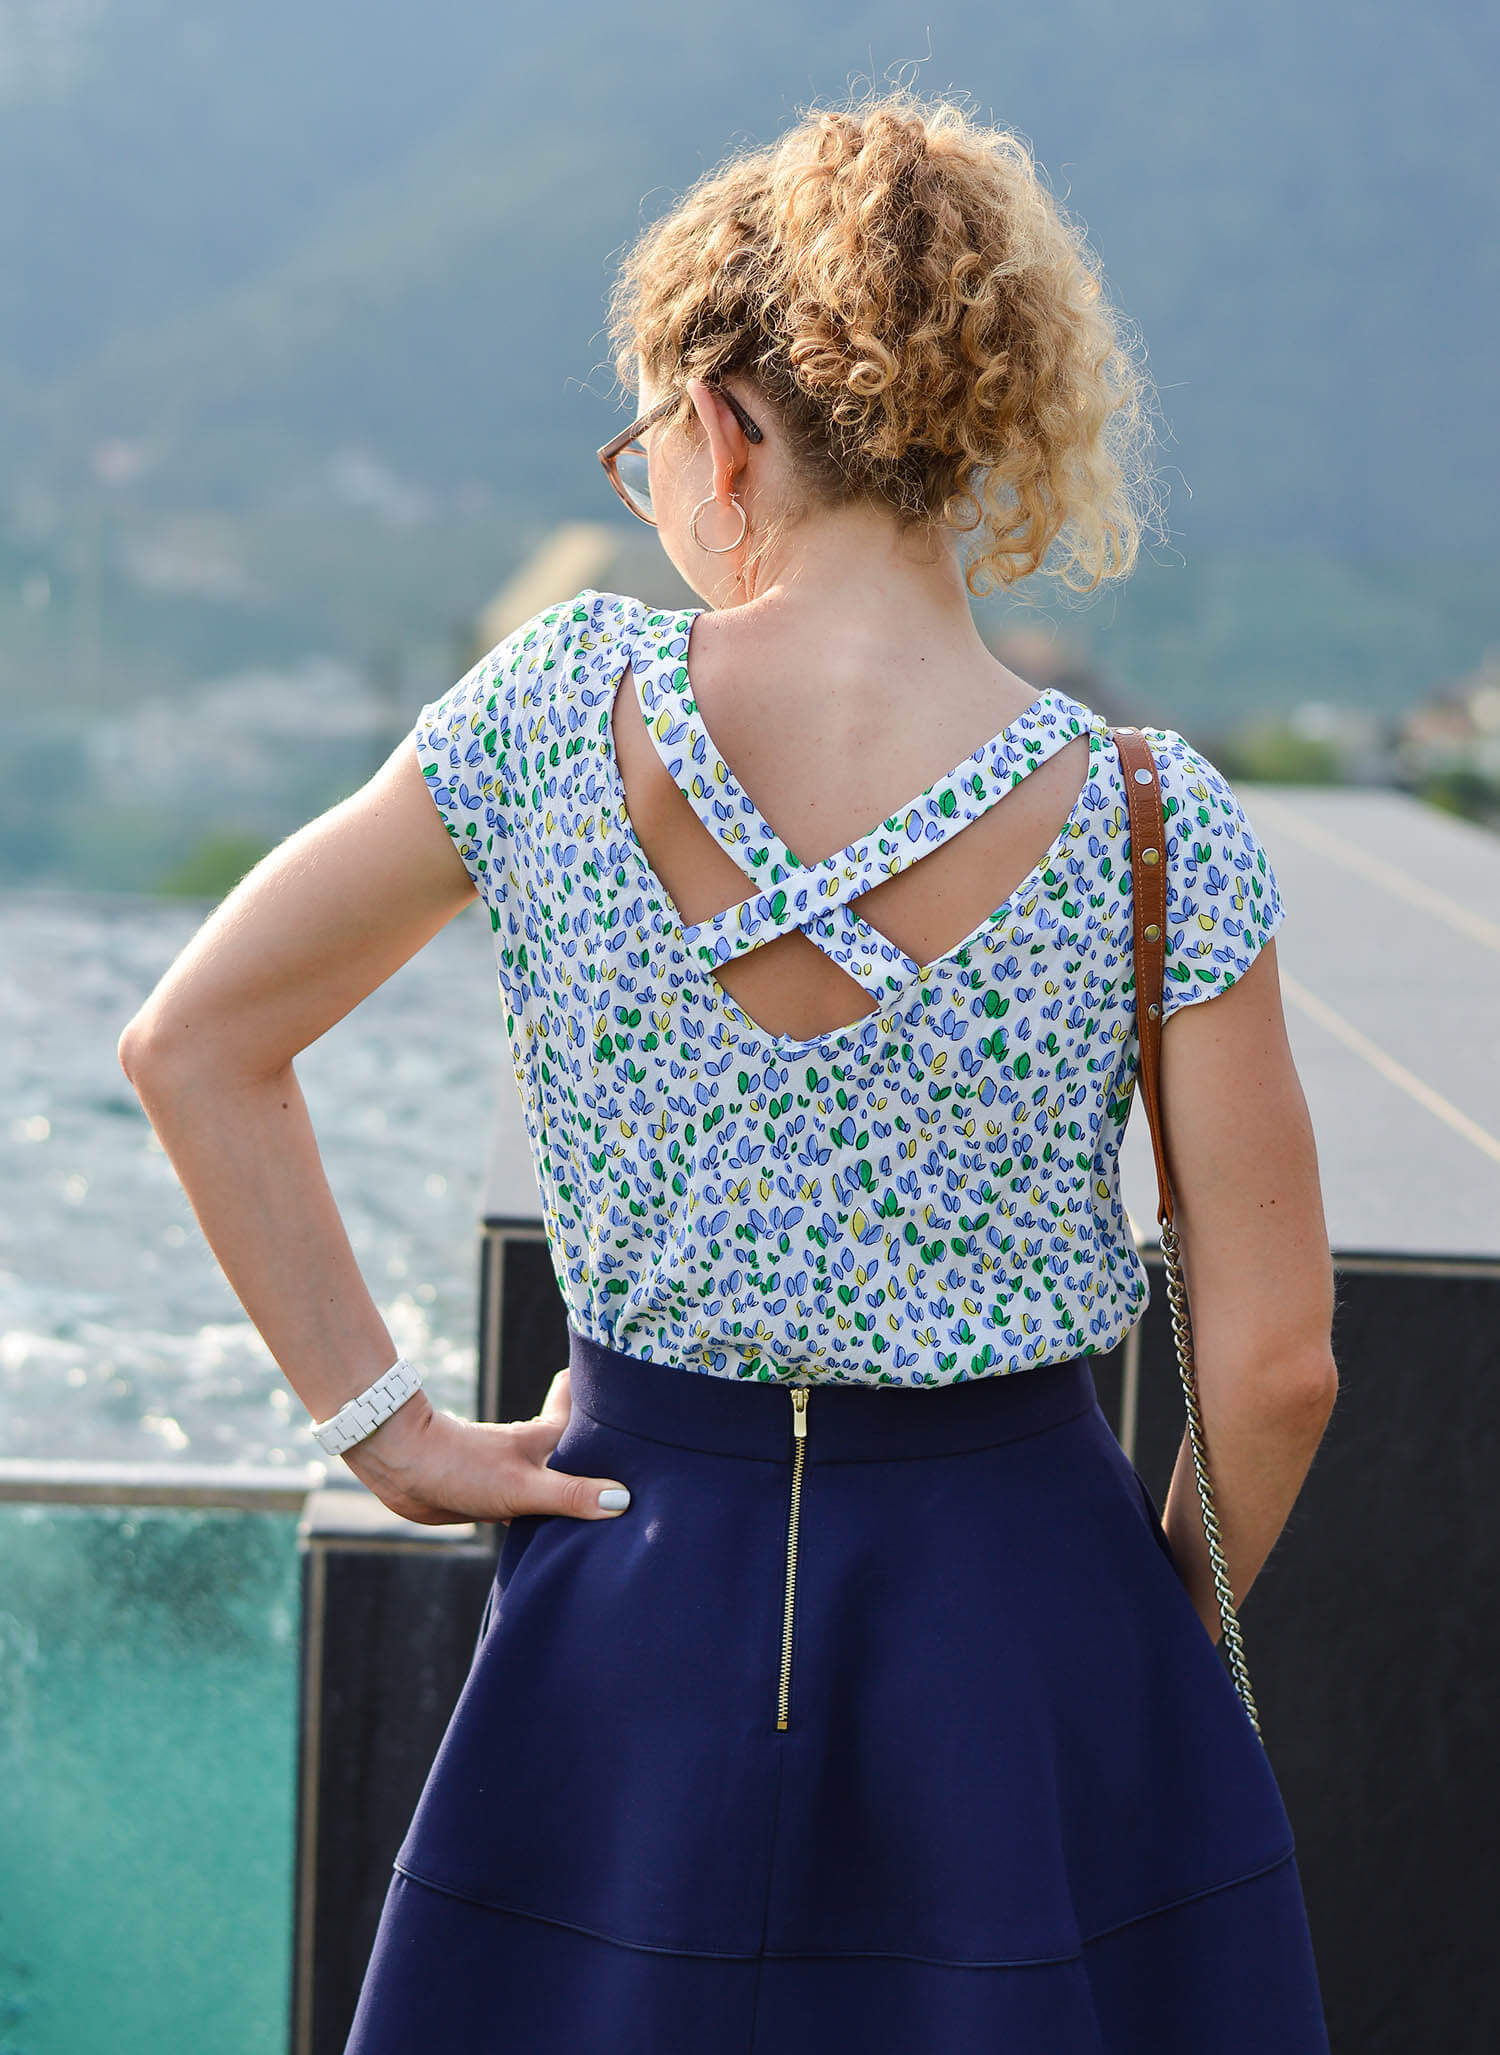 Kationette-fashionblog-nrw-Outfit-Flared-Skirt-Zara-Blouse-Hotel-Hohenwart-South-Tyrol